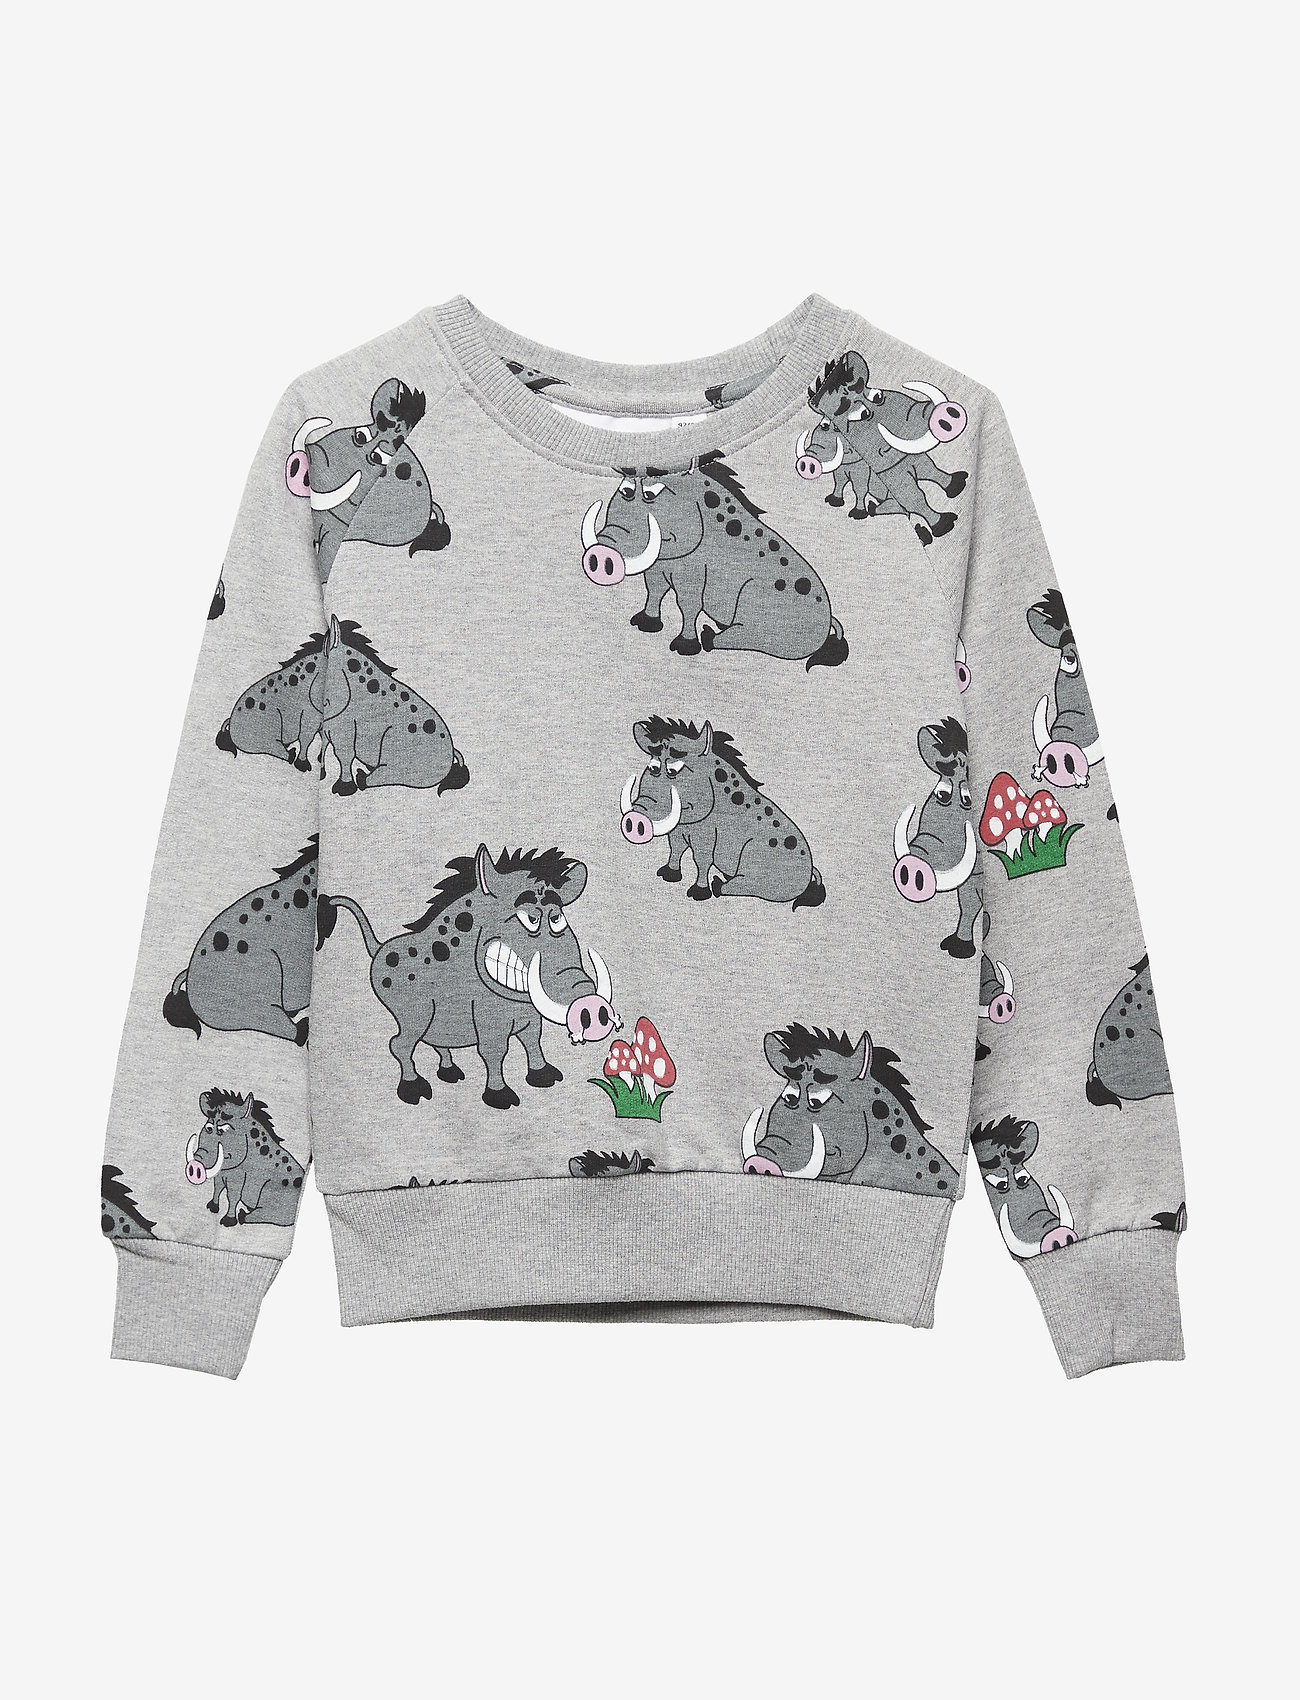 Tao & friends - Sweatshirt Vildsvinet - sweatshirts - grey